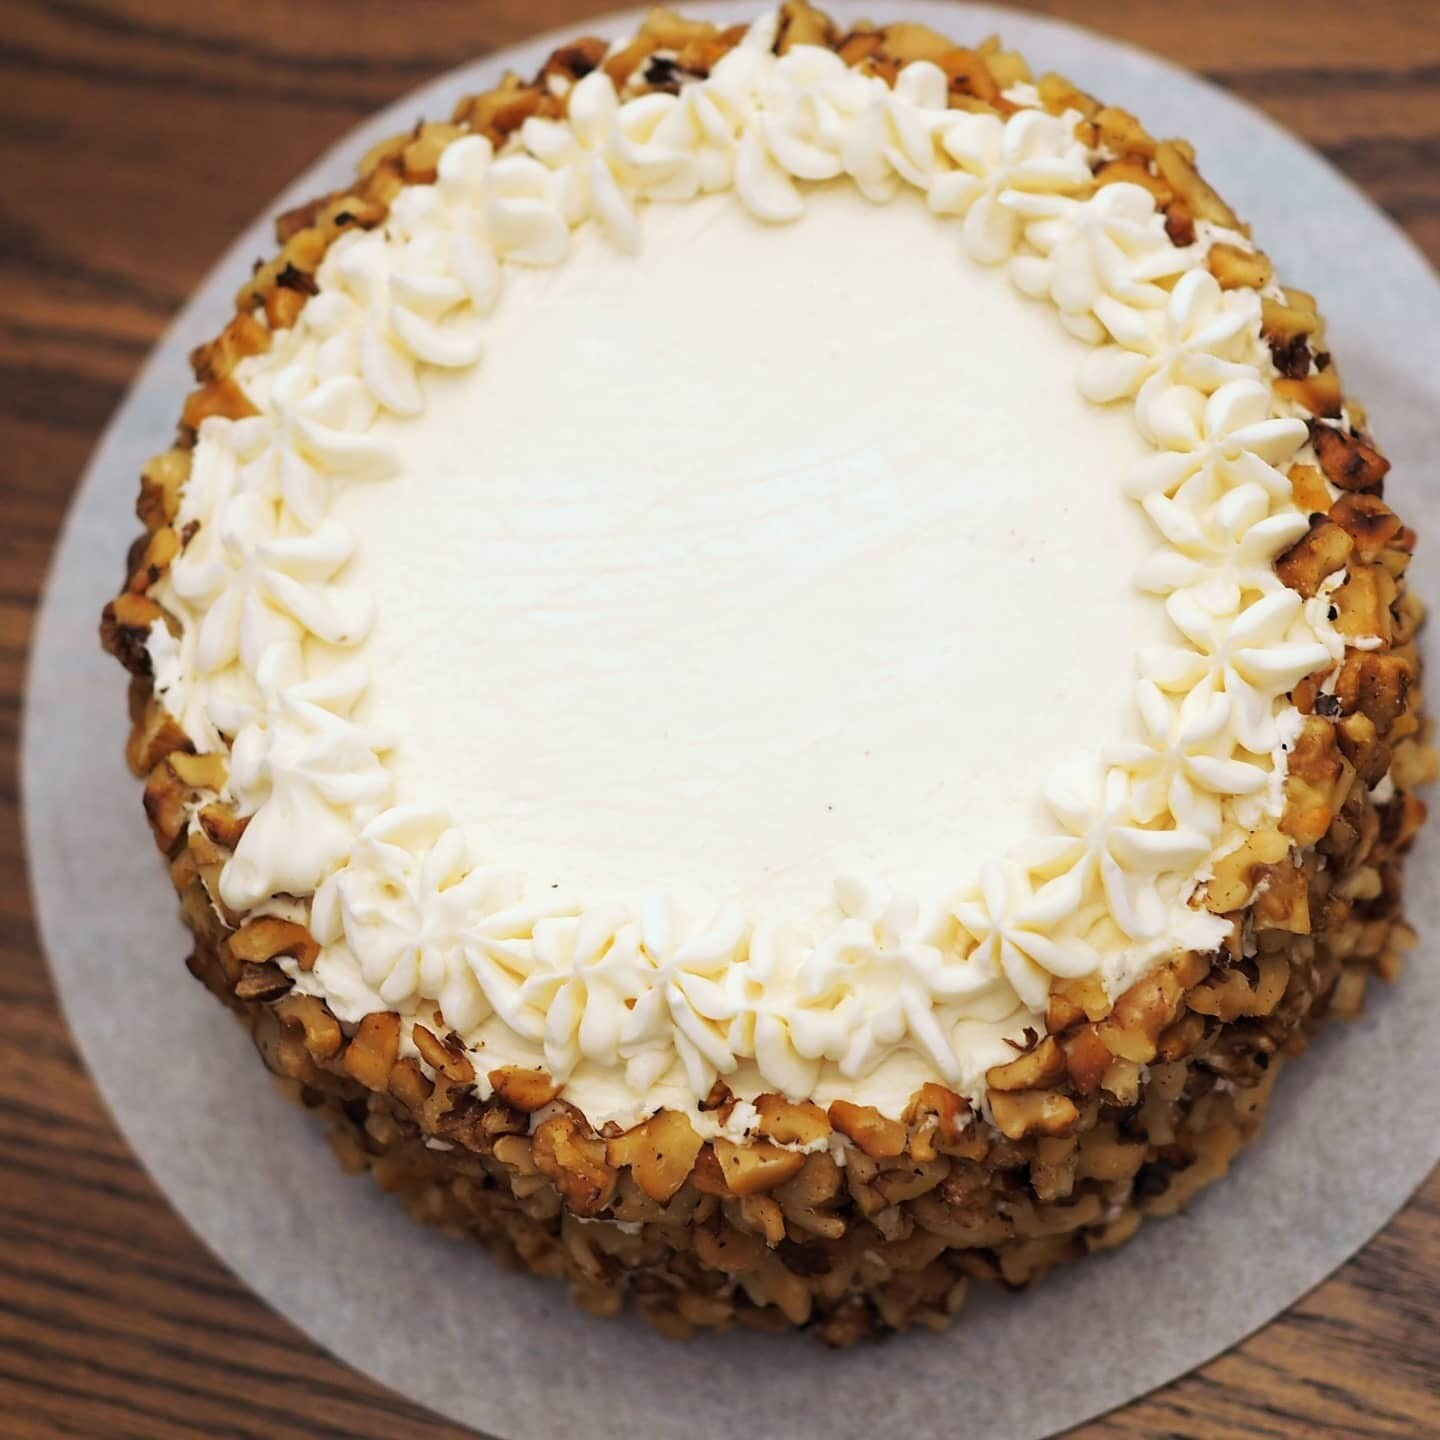 Vegan carrot cake with cream cheese frosting and roasted walnuts. GLUTEN FREE available.